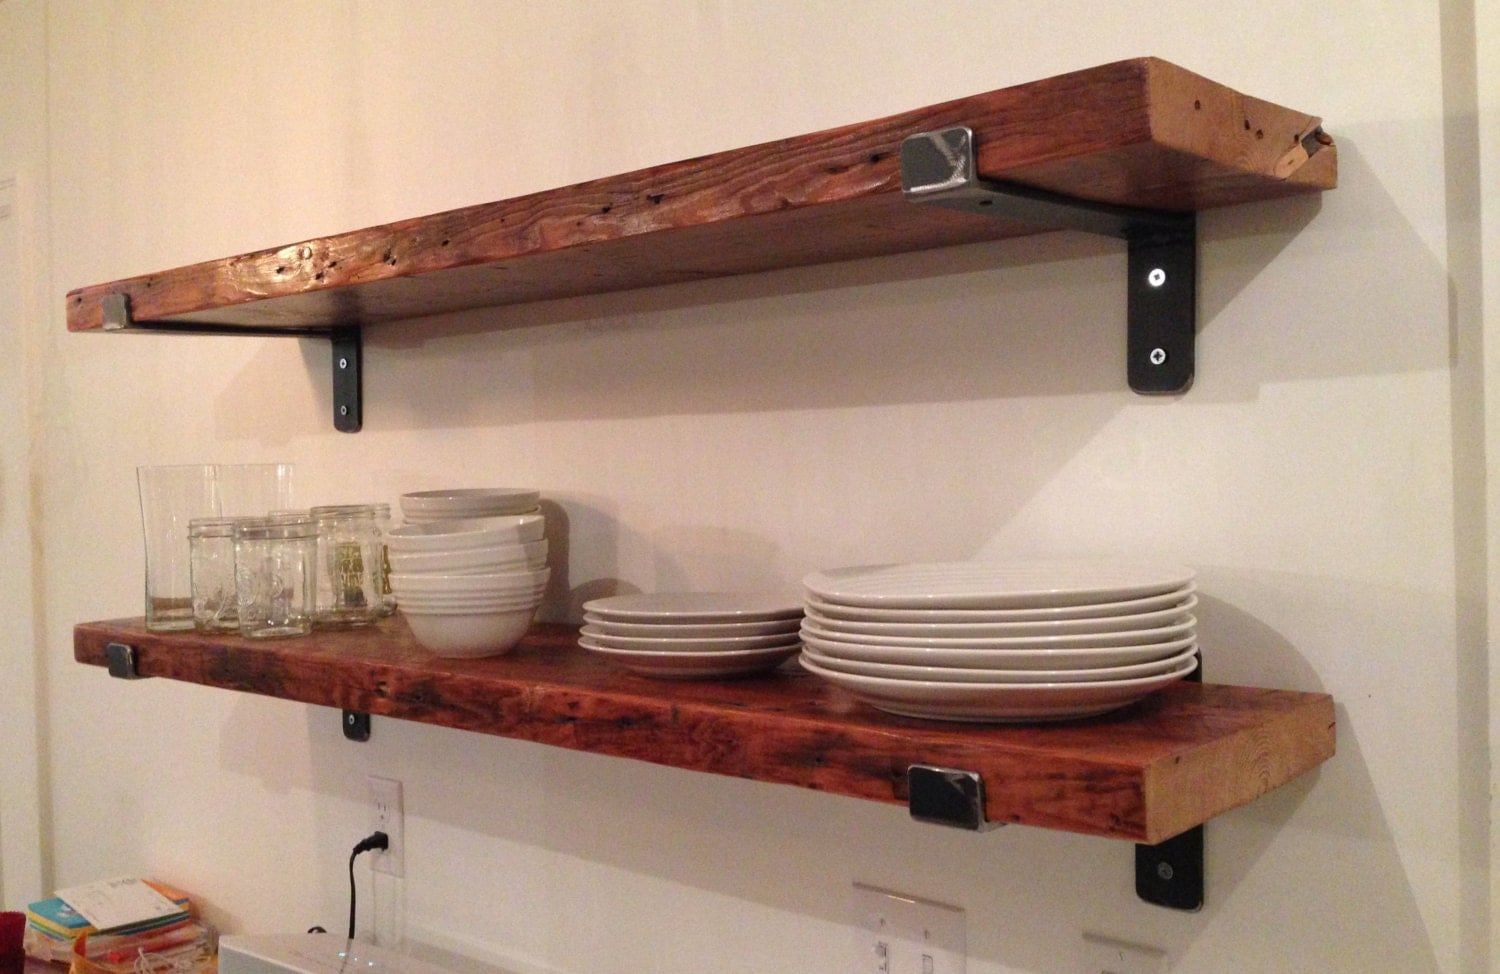 One Reclaimed Wood Shelf 48 X 9.5 With Two By LRdesignlab